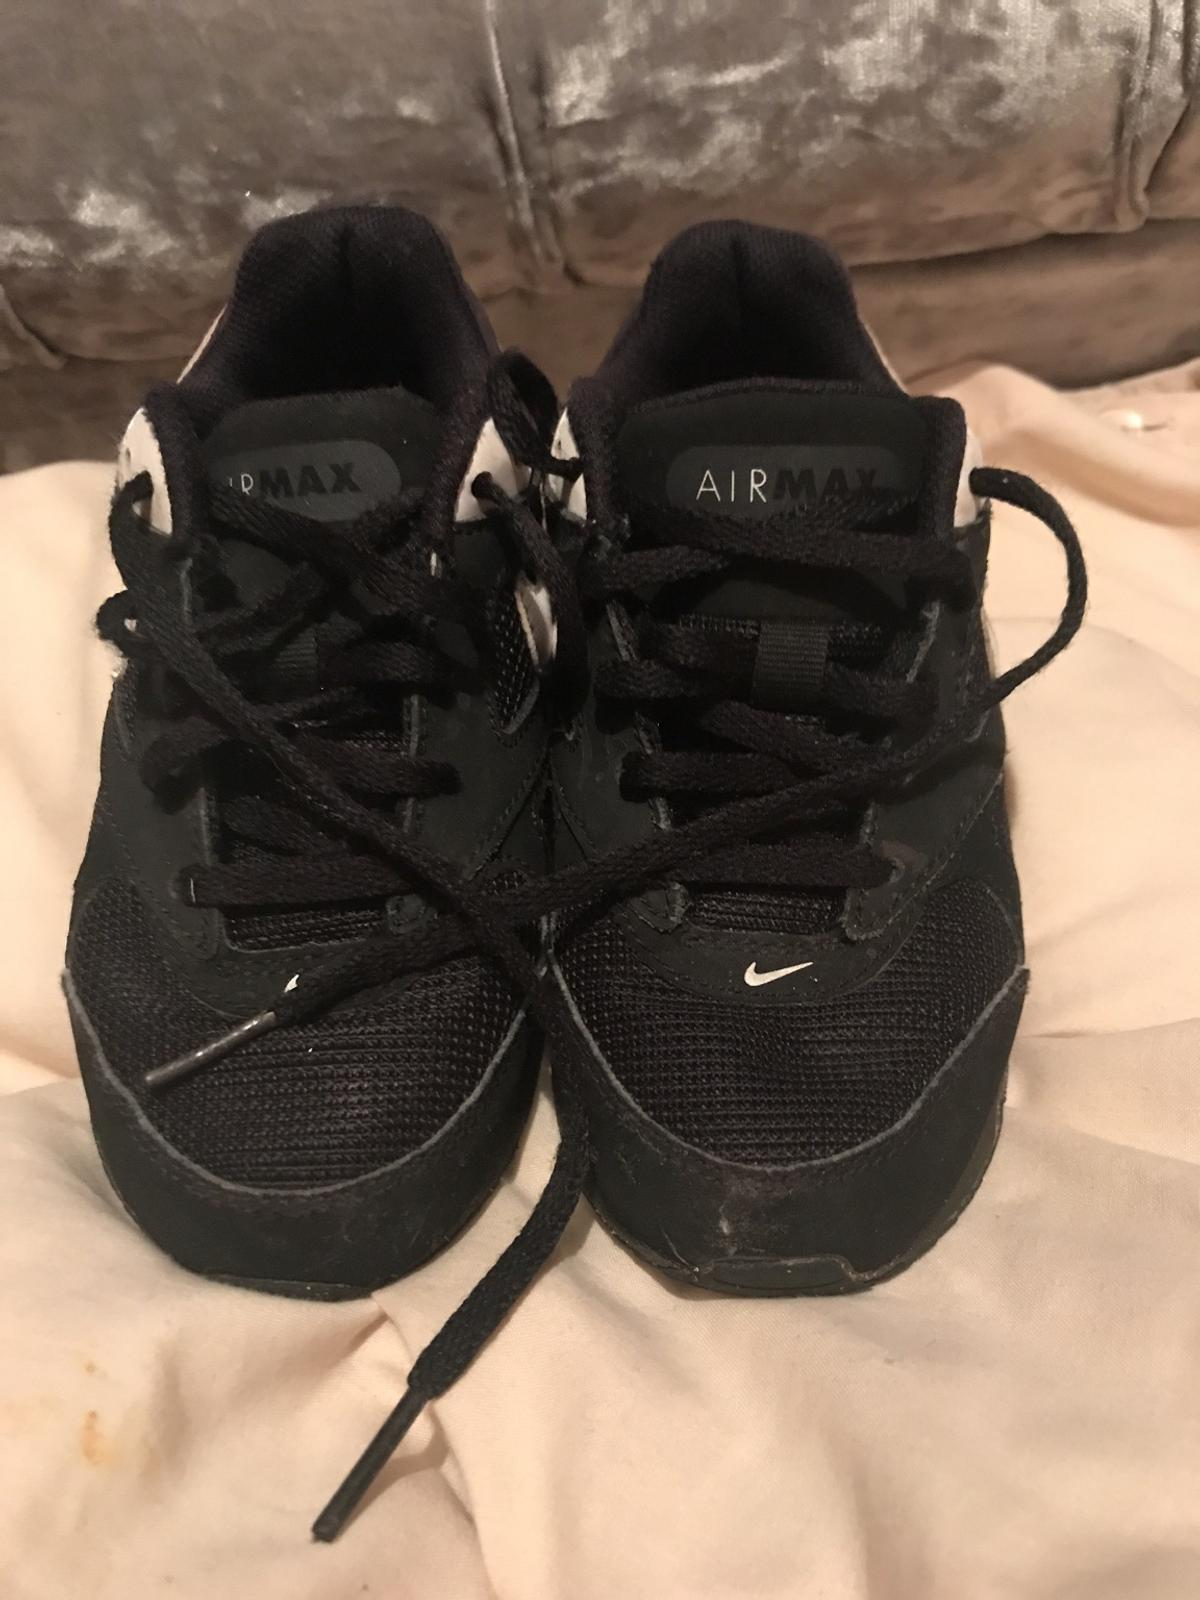 Size children 11 Nike trainers